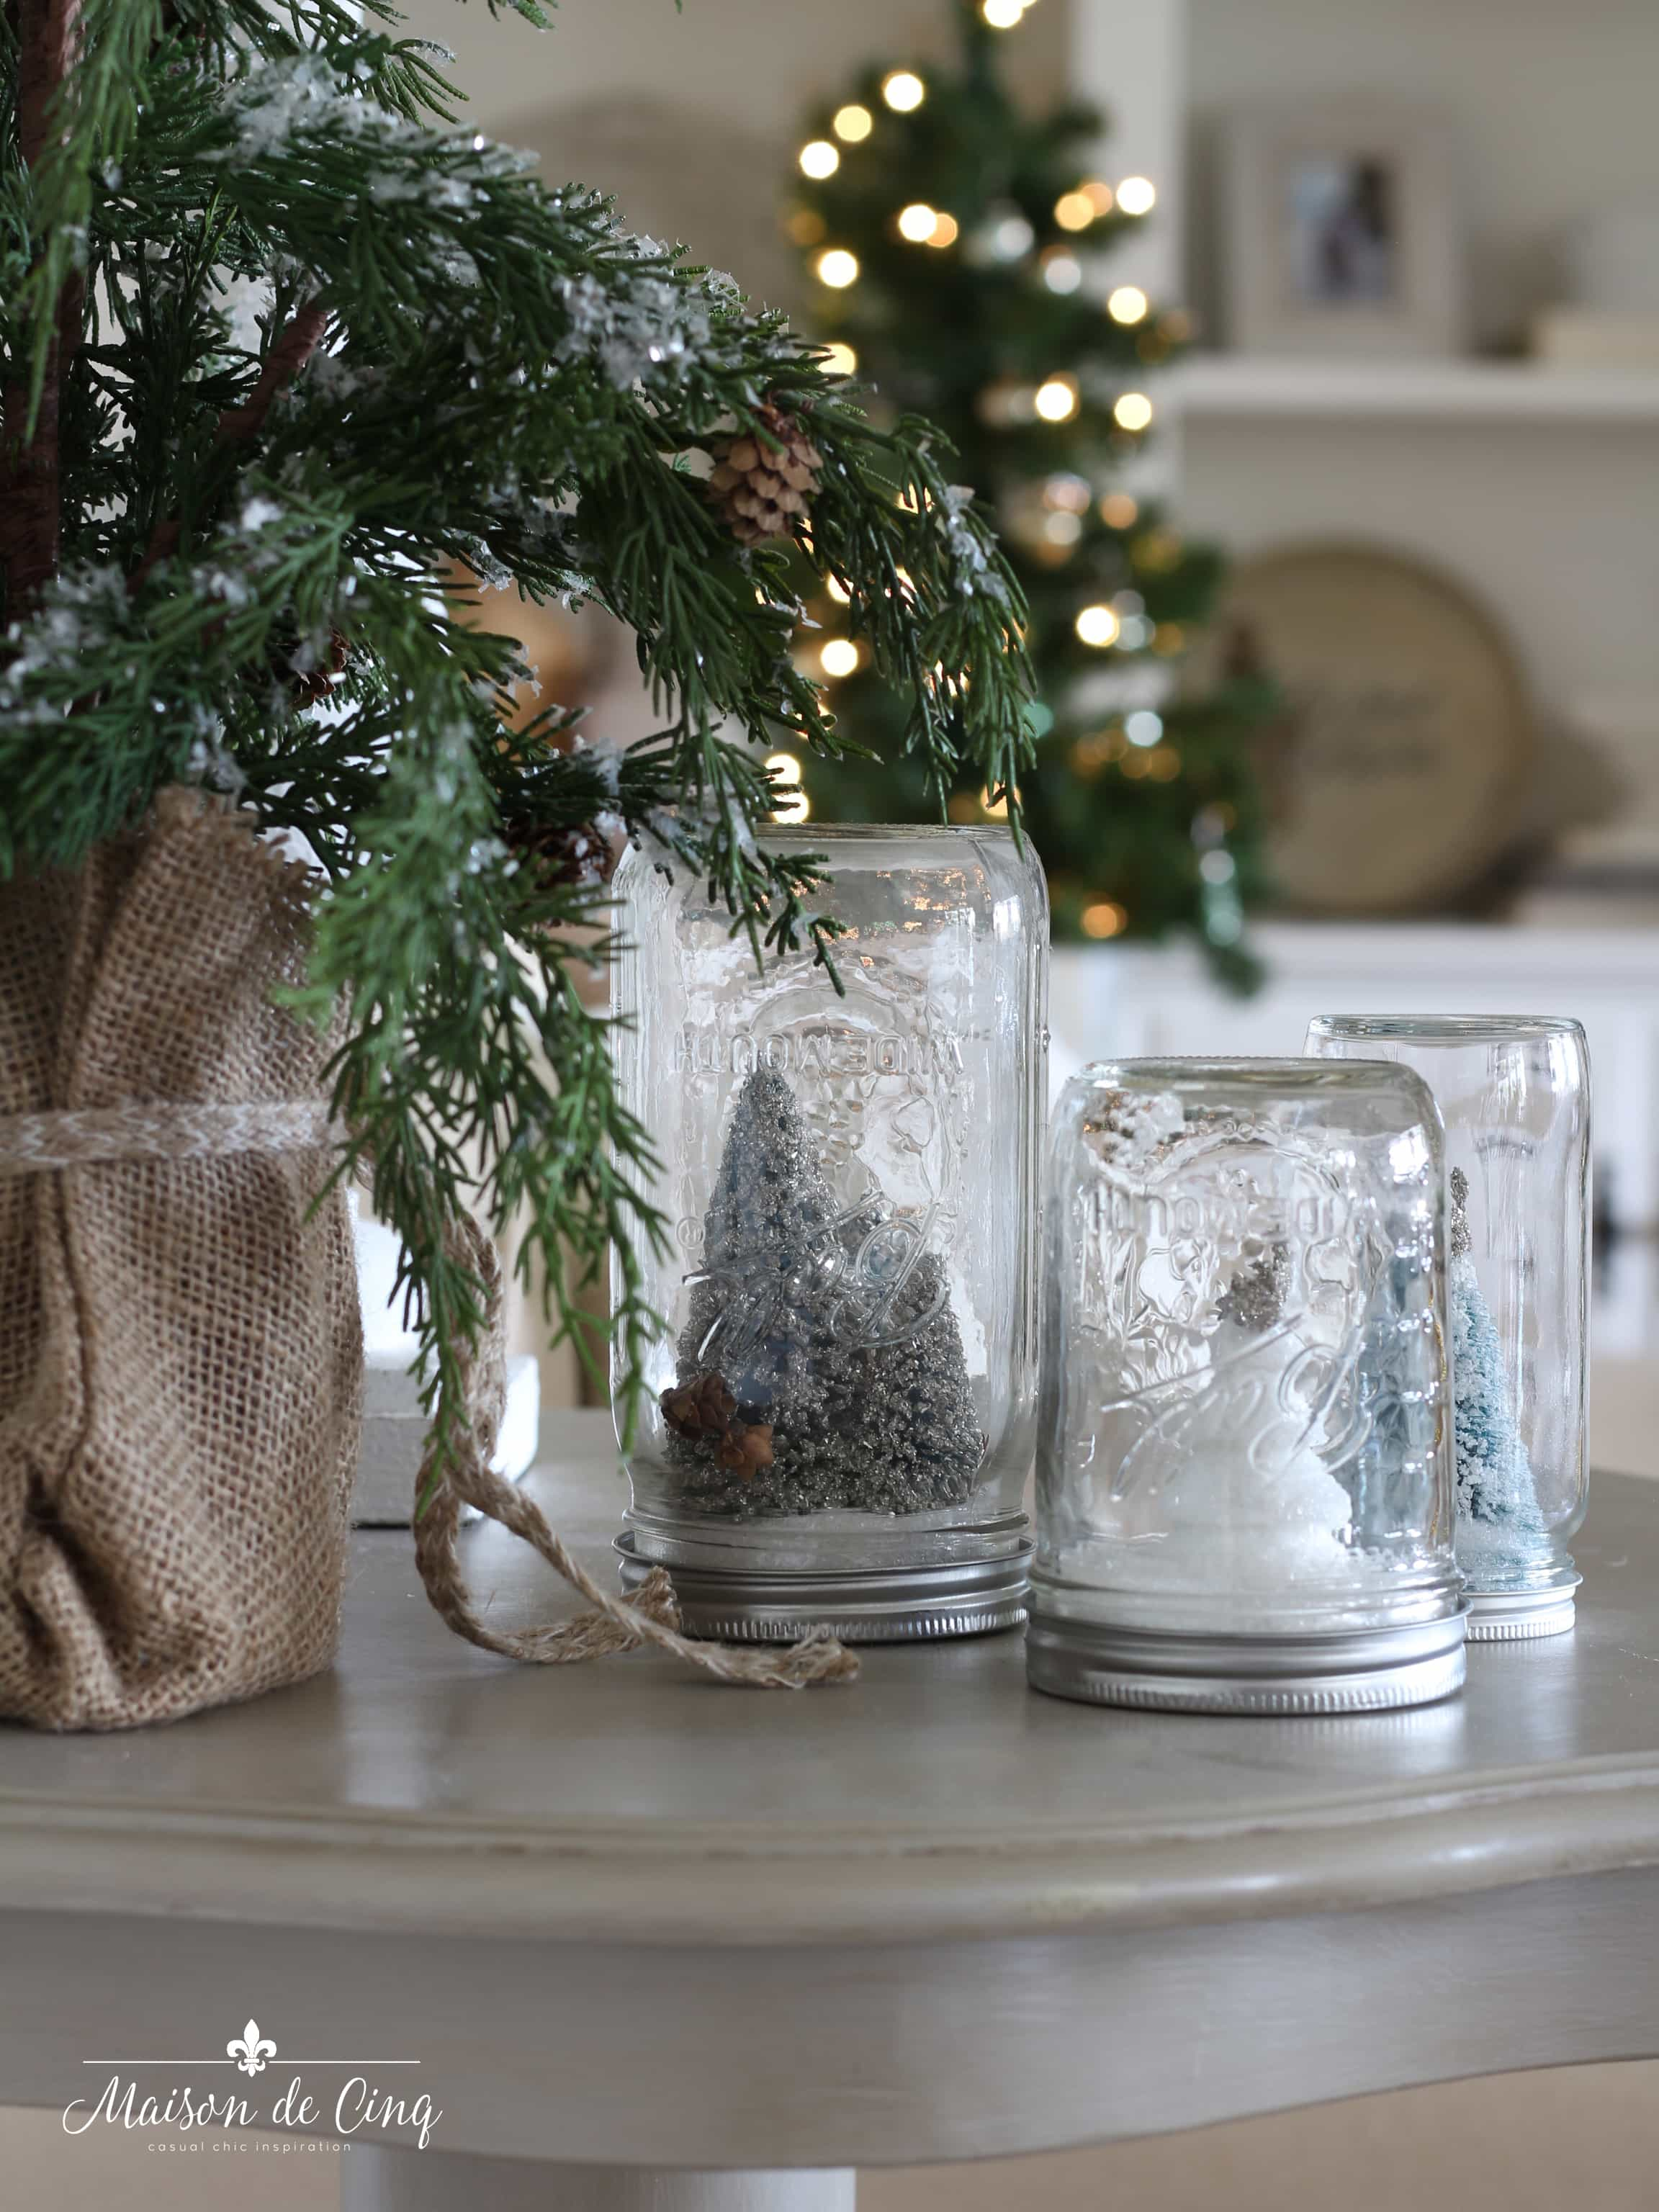 French farmhouse Christmas grouping of mason jar snow globes on table Christmas tree holiday decor